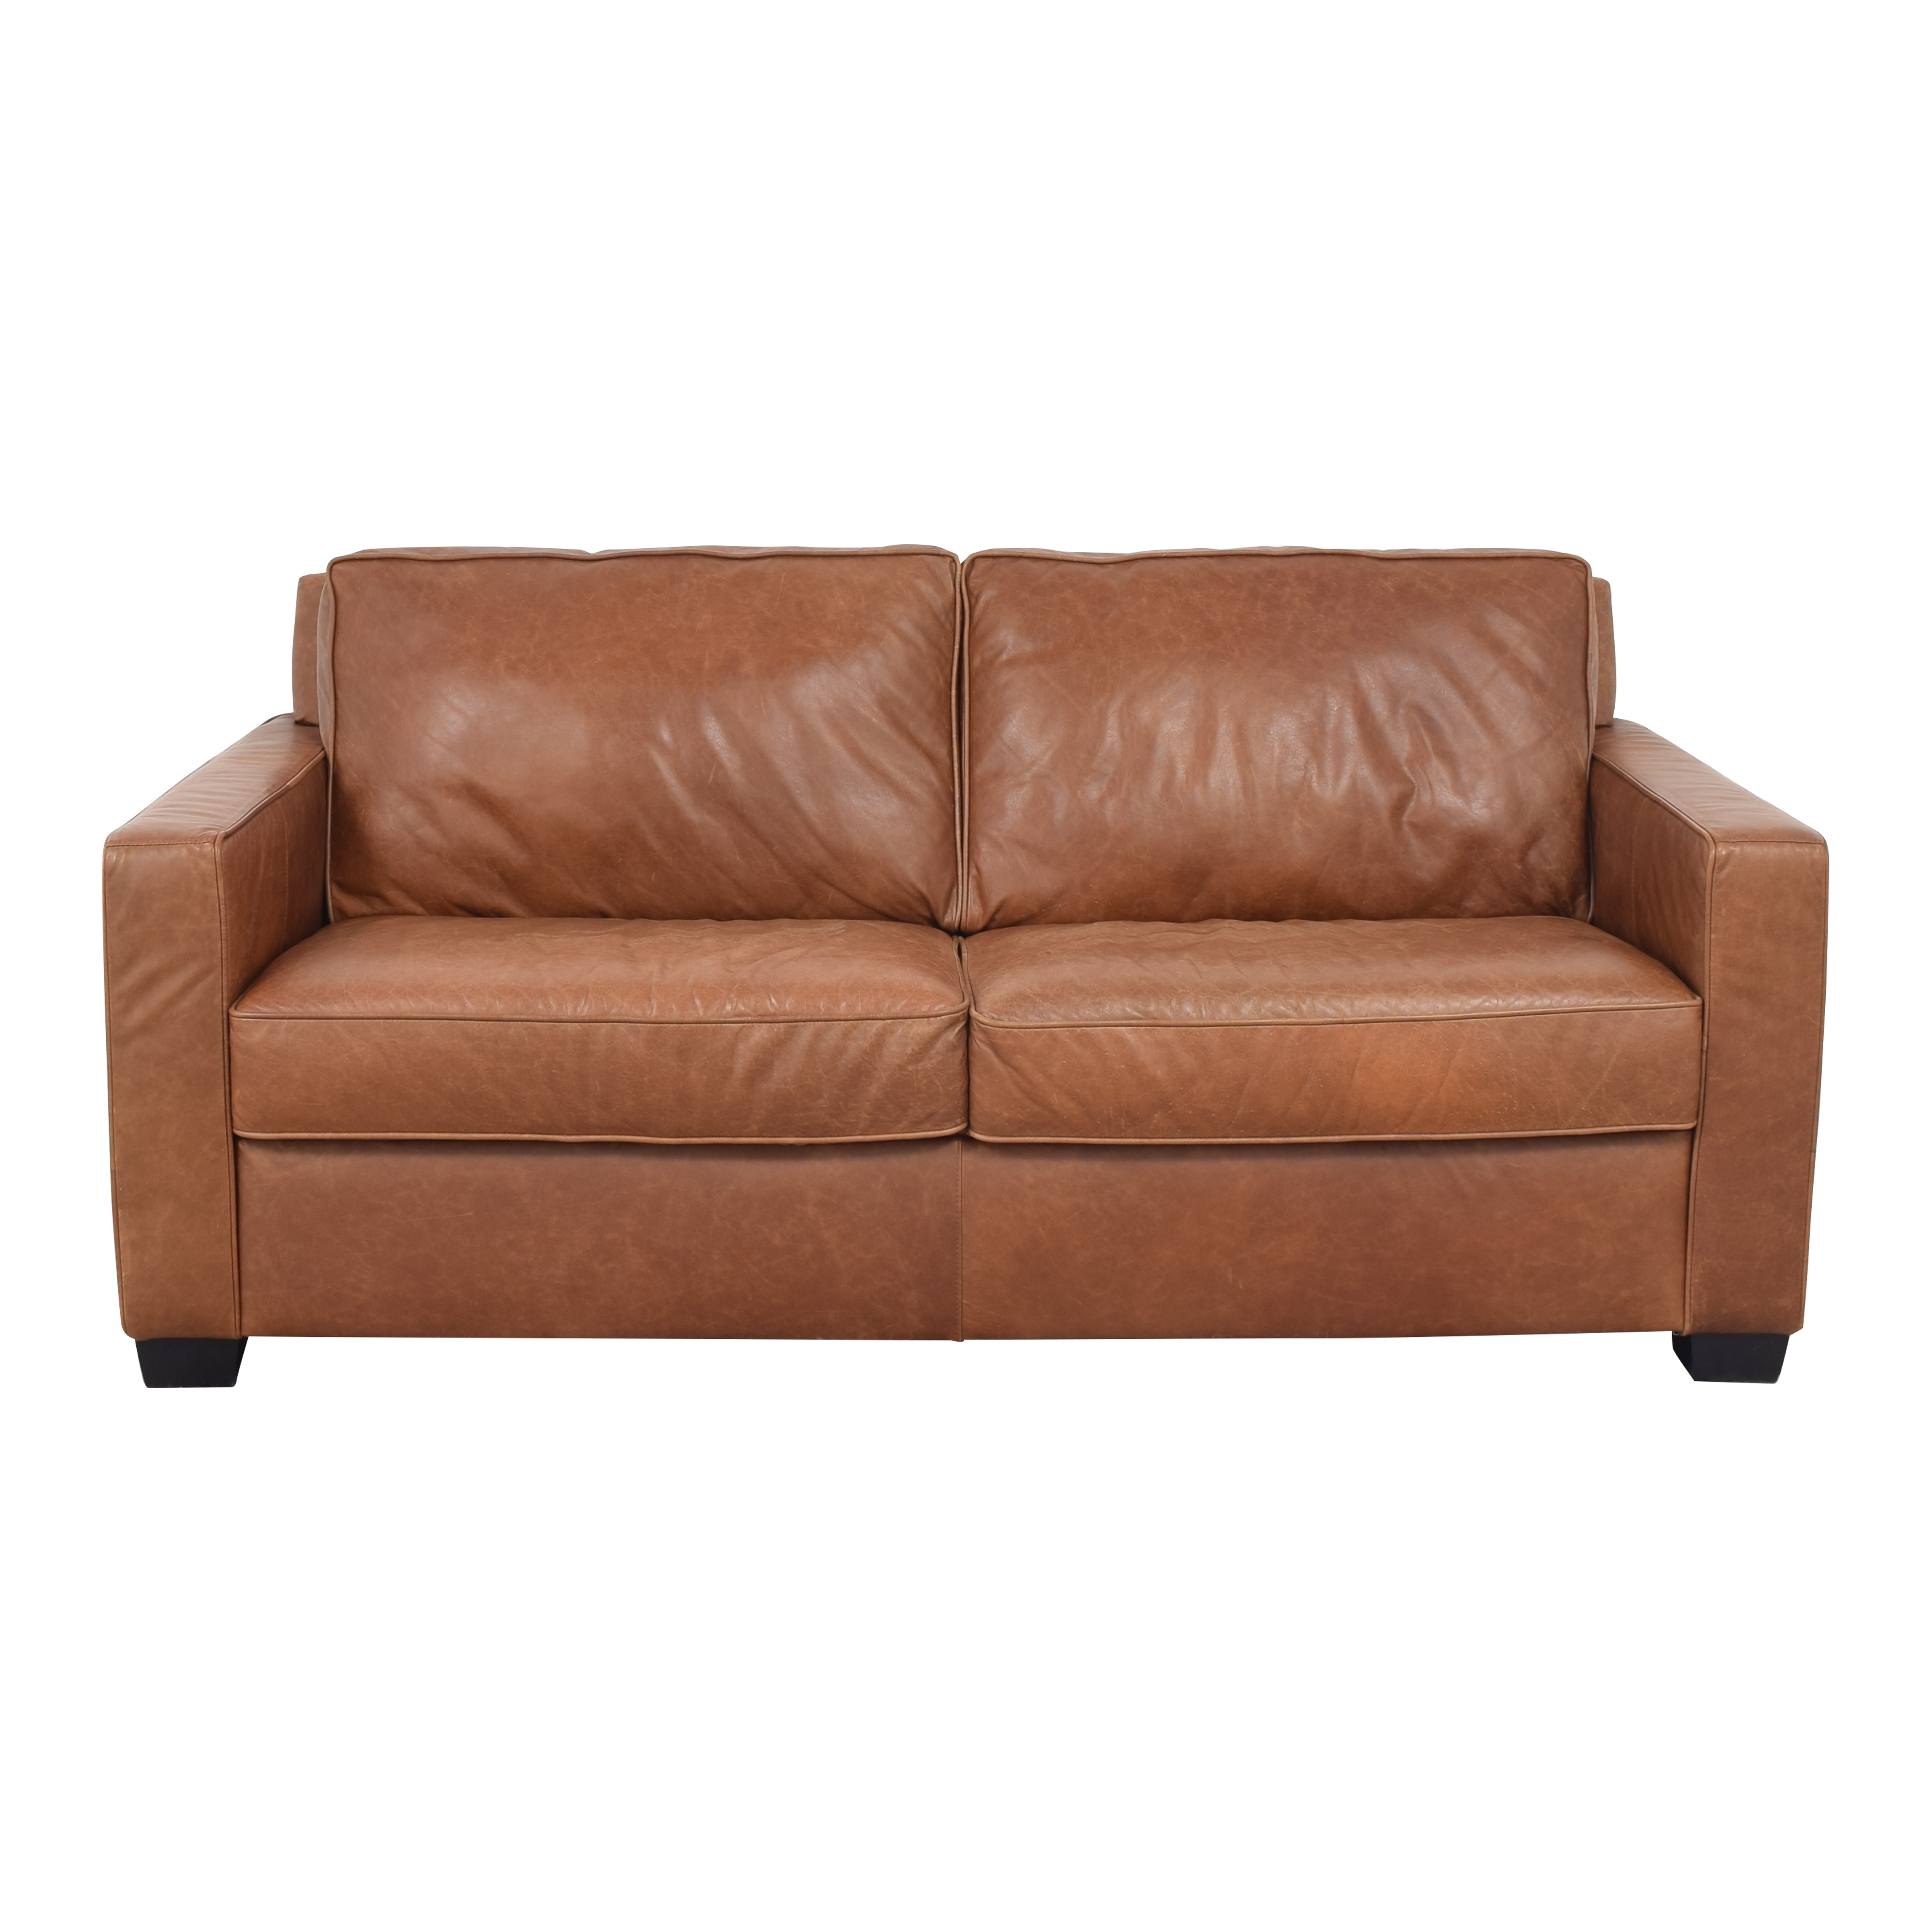 West Elm Henry Leather Sofa / Classic Sofas